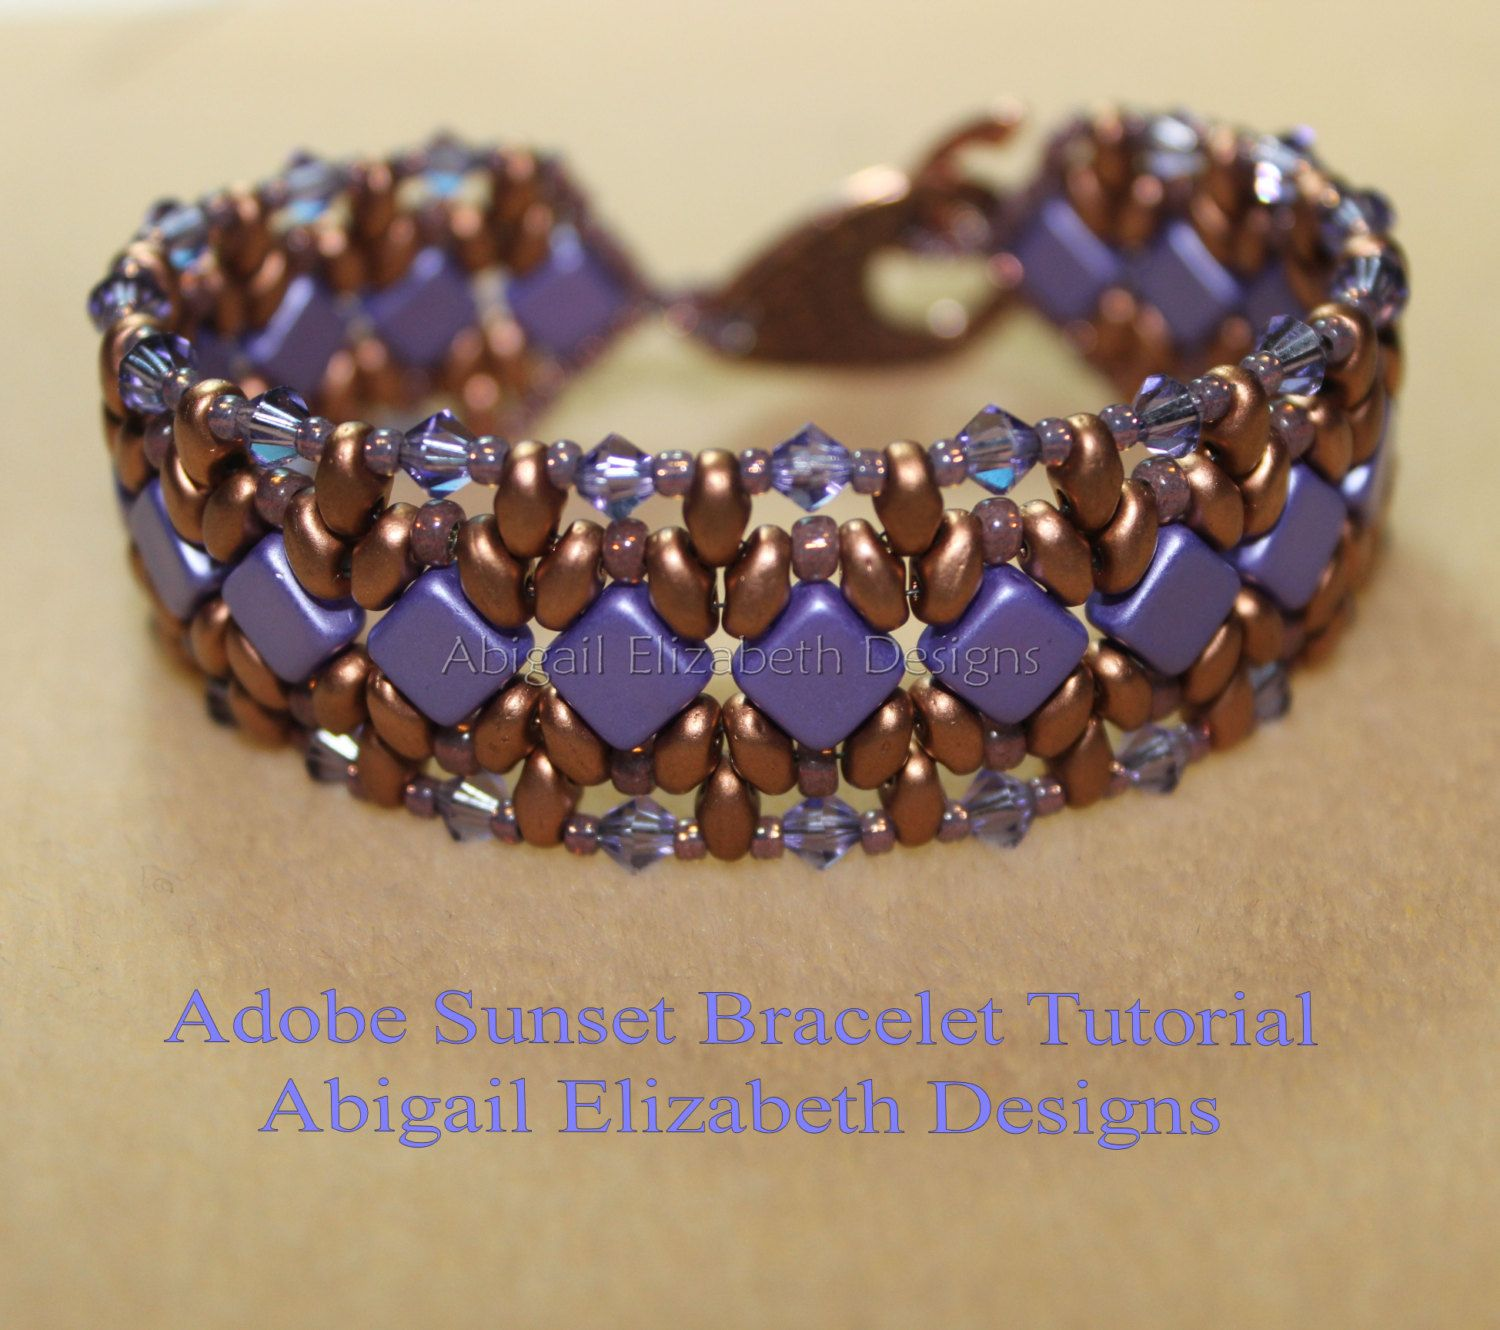 Adobe Sunset Bracelet Tutorial-Personal Use by AbigailEDesigns